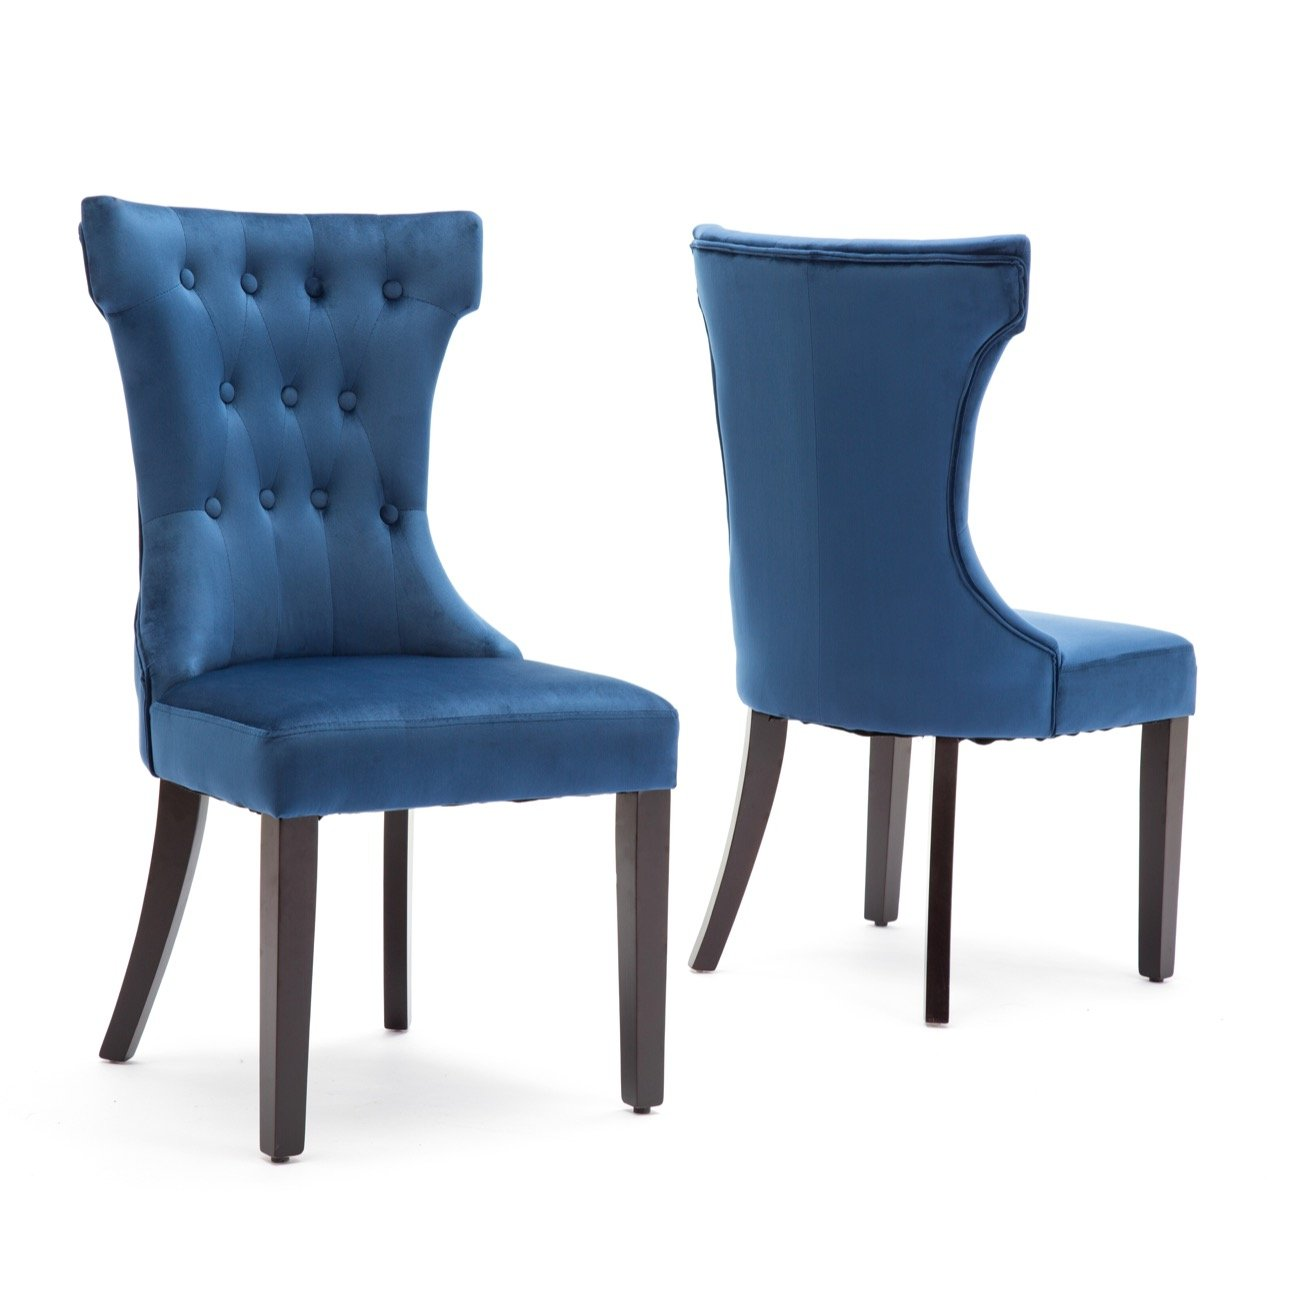 Pleasant Details About Belleze 2 Pcs Dining Chair Upholstered Armless Accent Side Chair Home Kitchen Caraccident5 Cool Chair Designs And Ideas Caraccident5Info